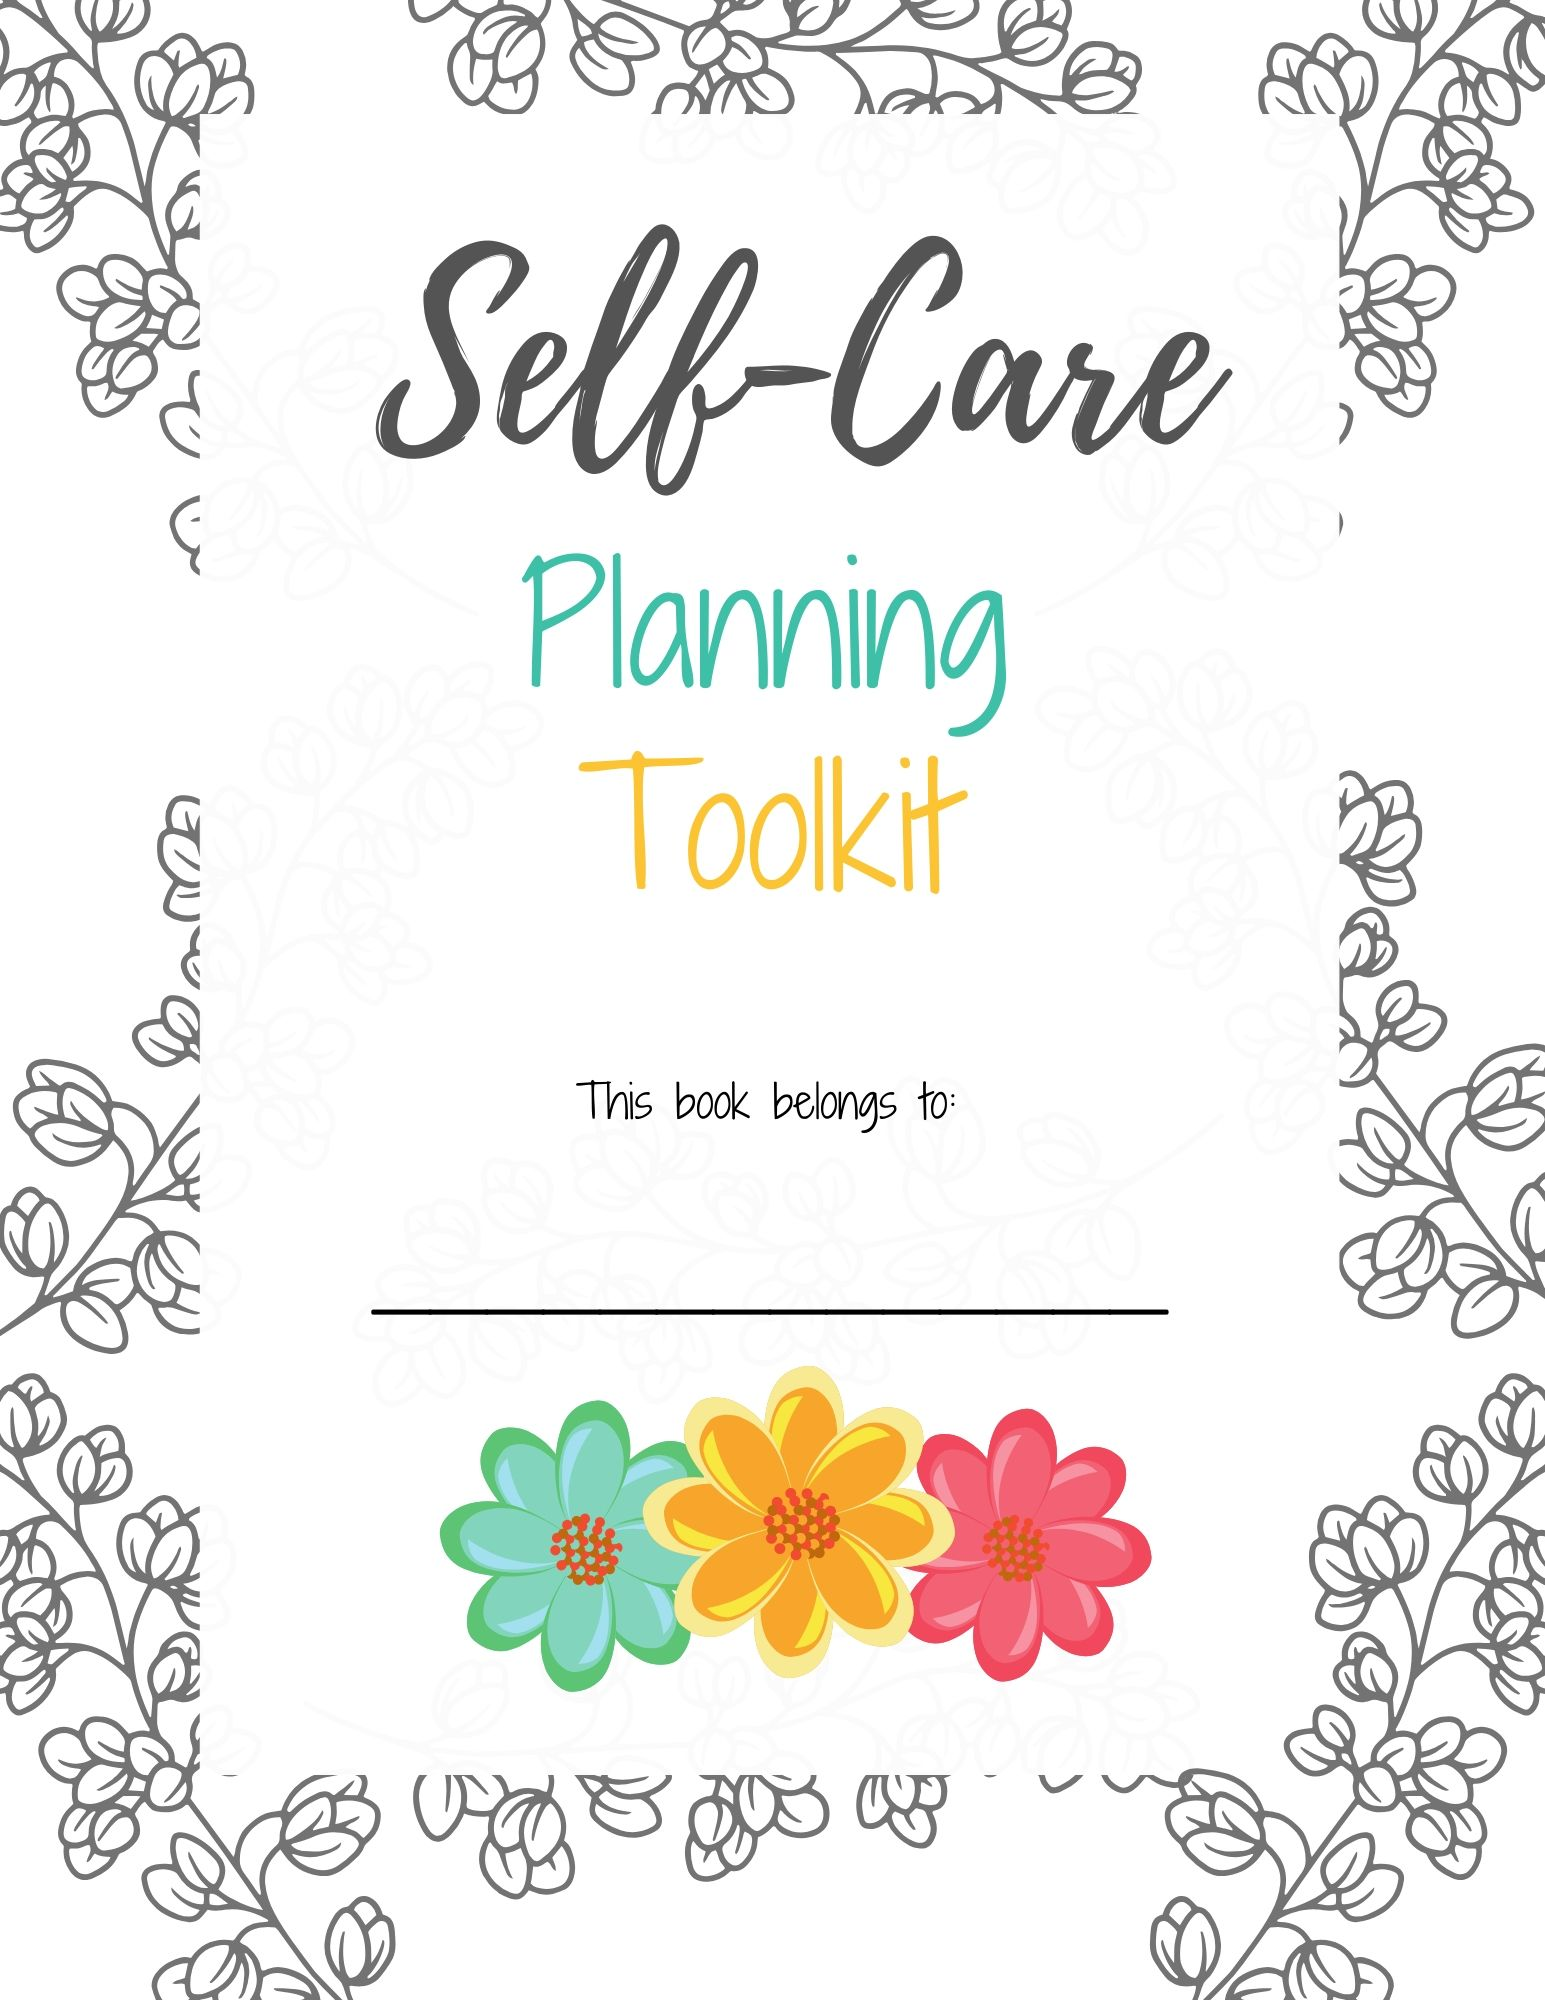 Self-Care Planning Toolkit - Floral Edition